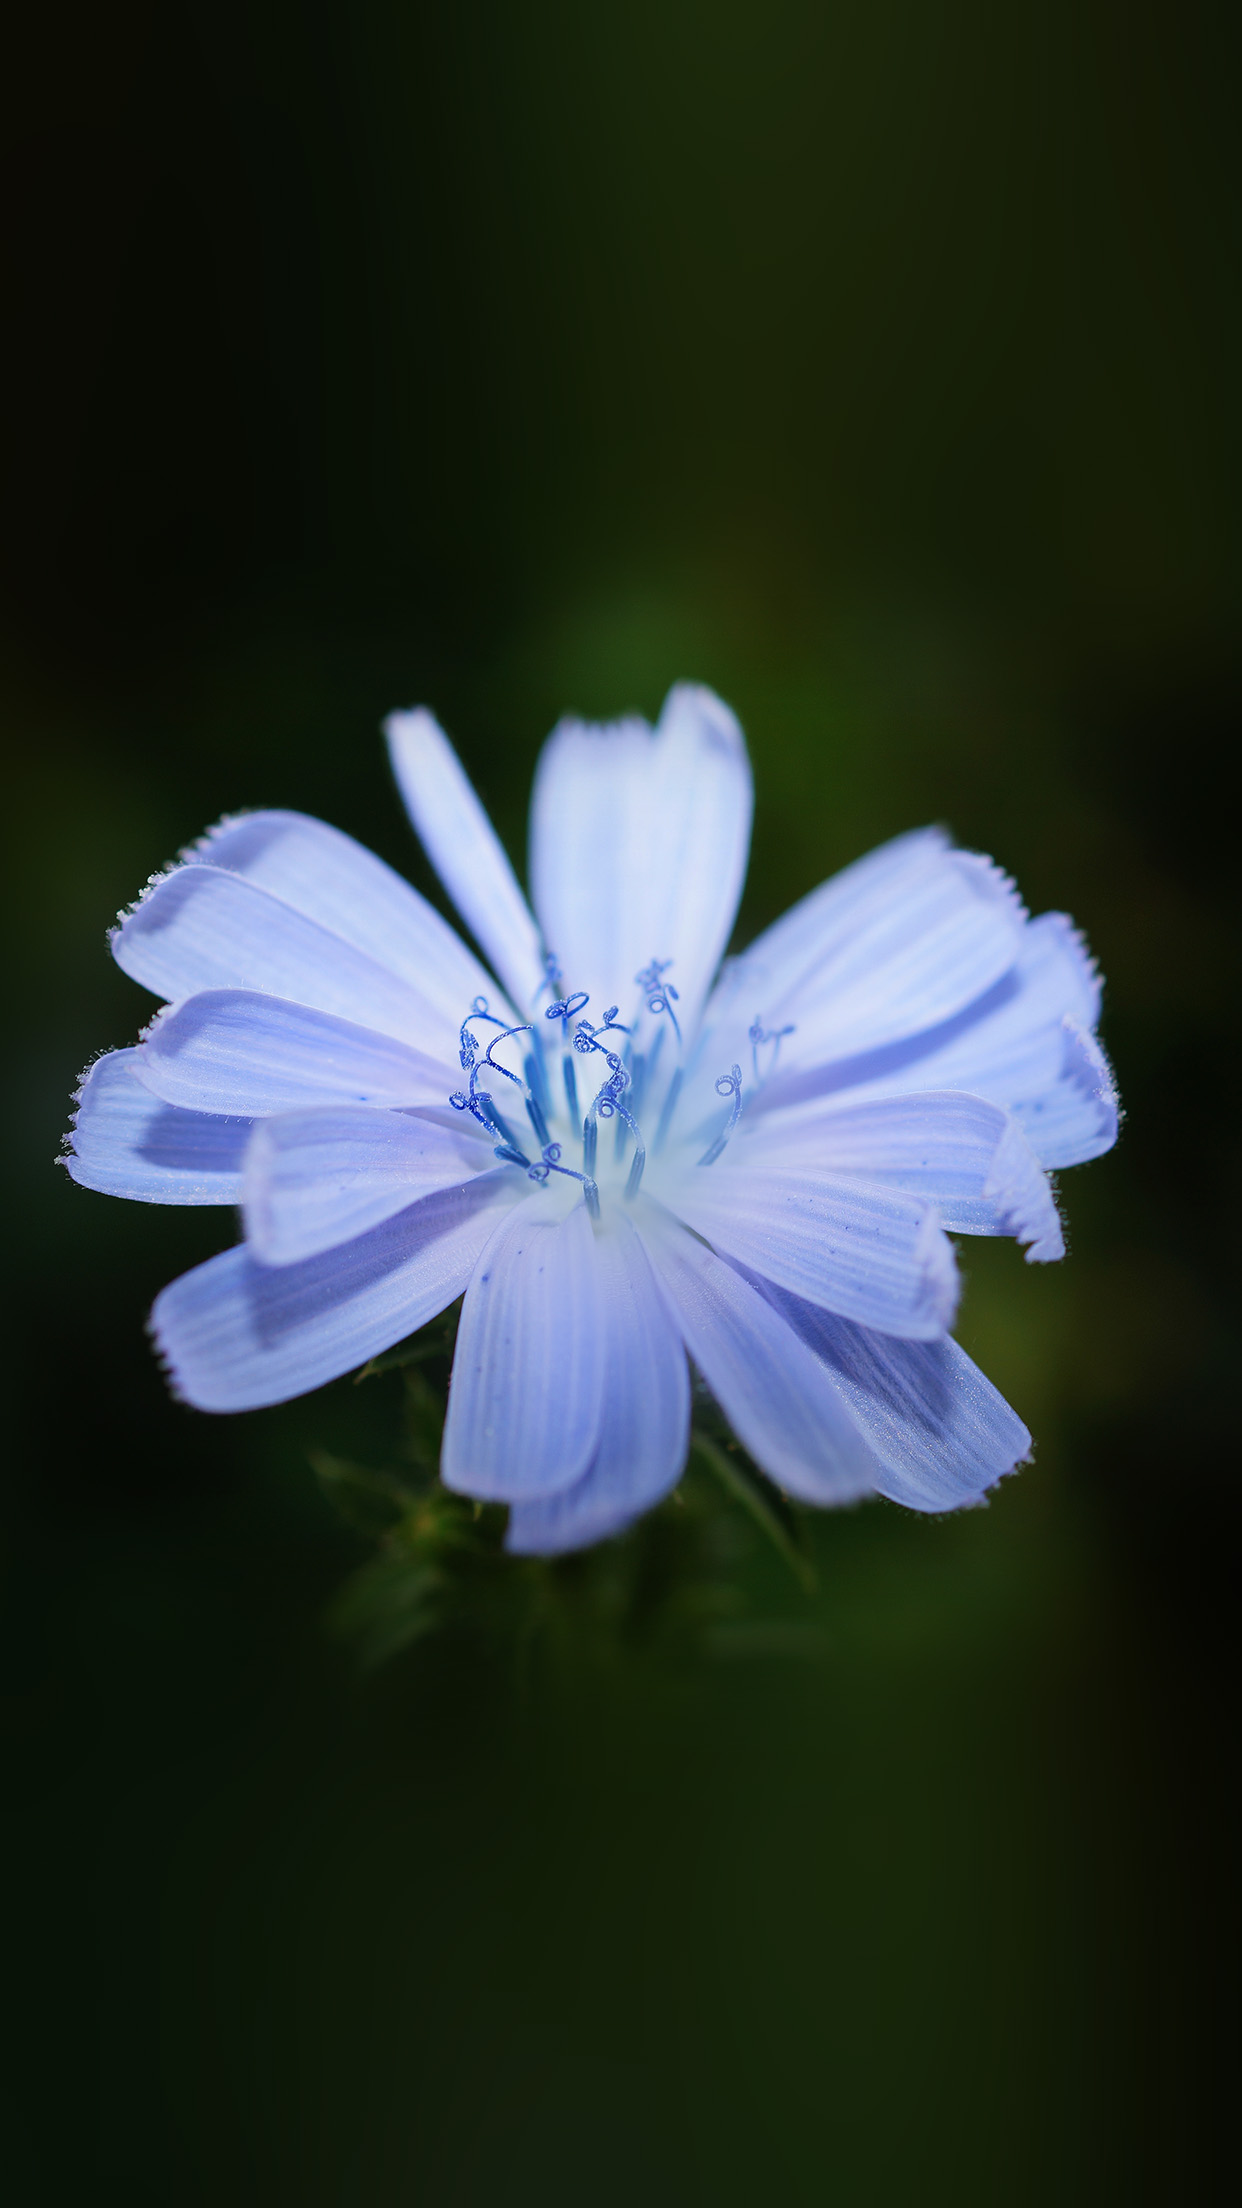 Flower Blue Spring New Life Nature Dark Android wallpaper